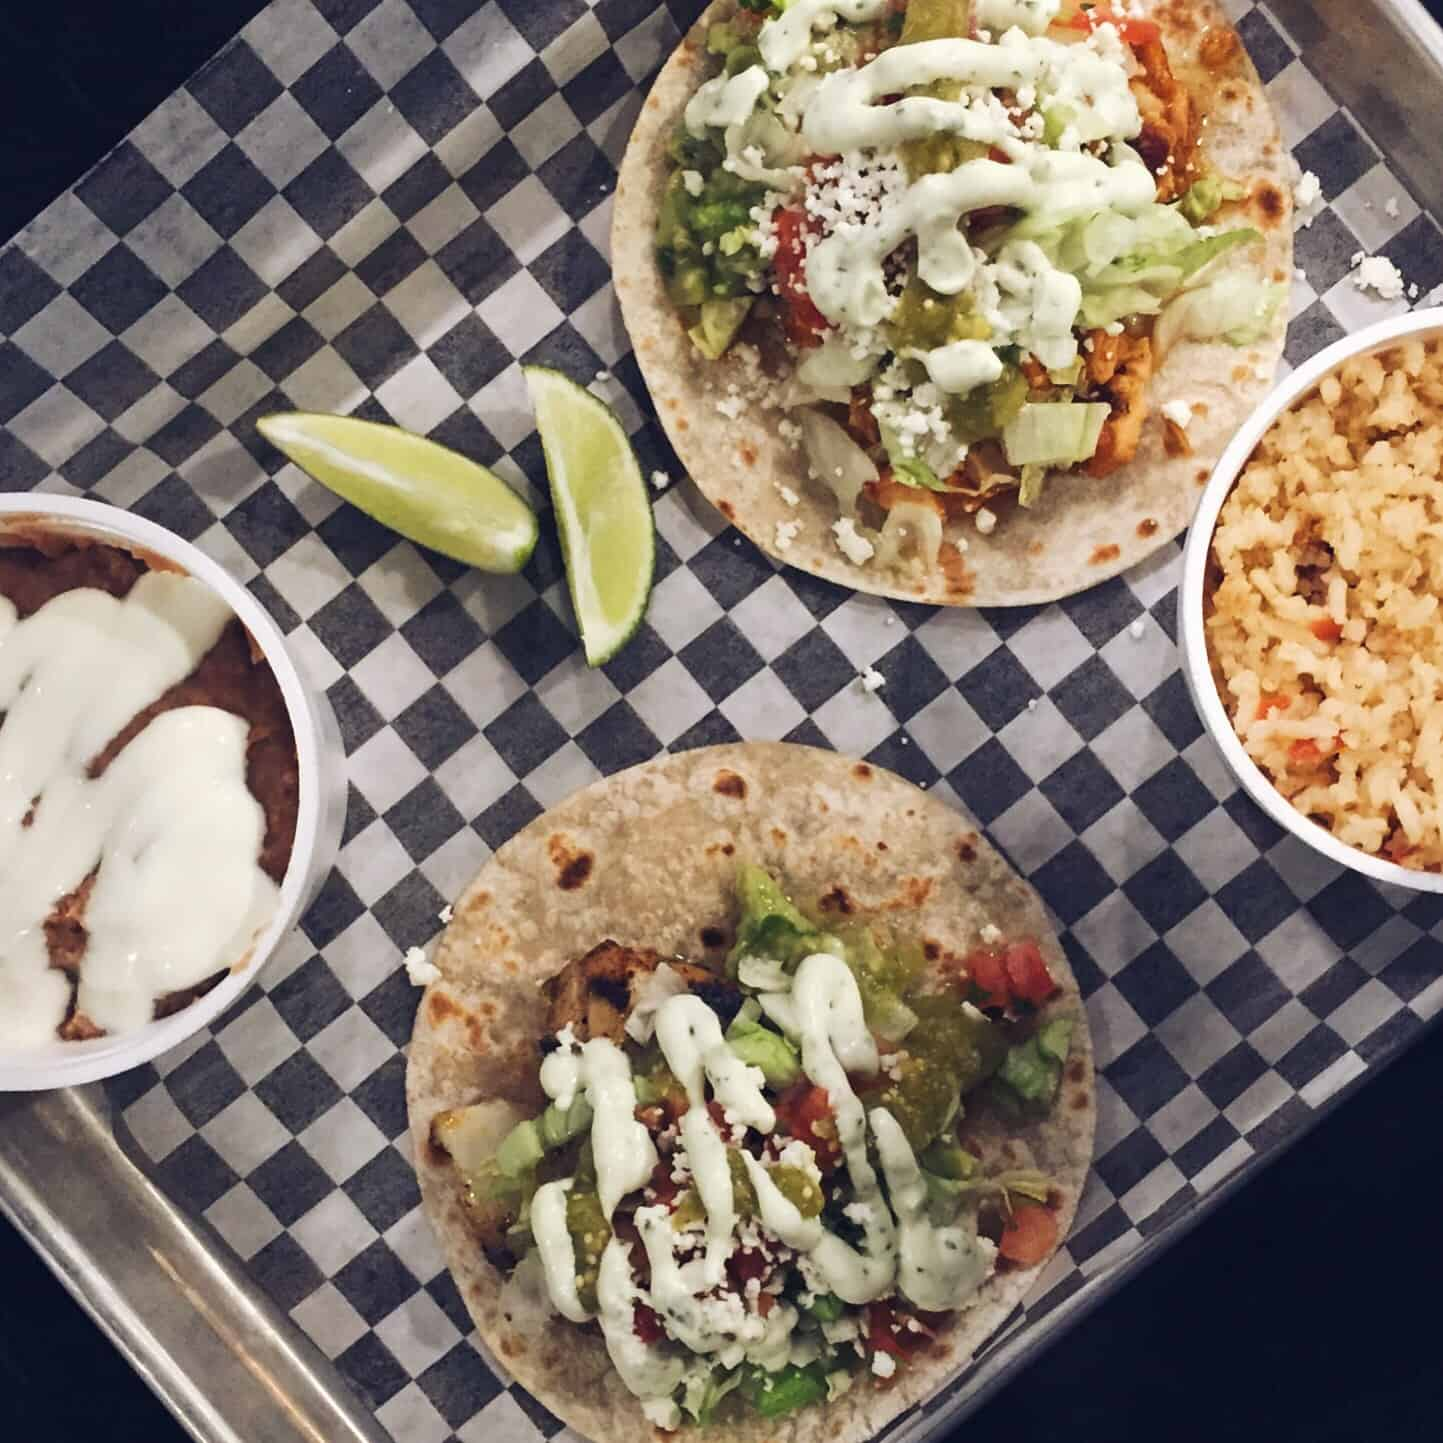 Best Toronto taco spots | top places to eat in Toronto | where to eat Mexican food in Toronto | Toronto restaurants worth visiting | Diary of a Toronto Girl, a Canadian lifestyle blog